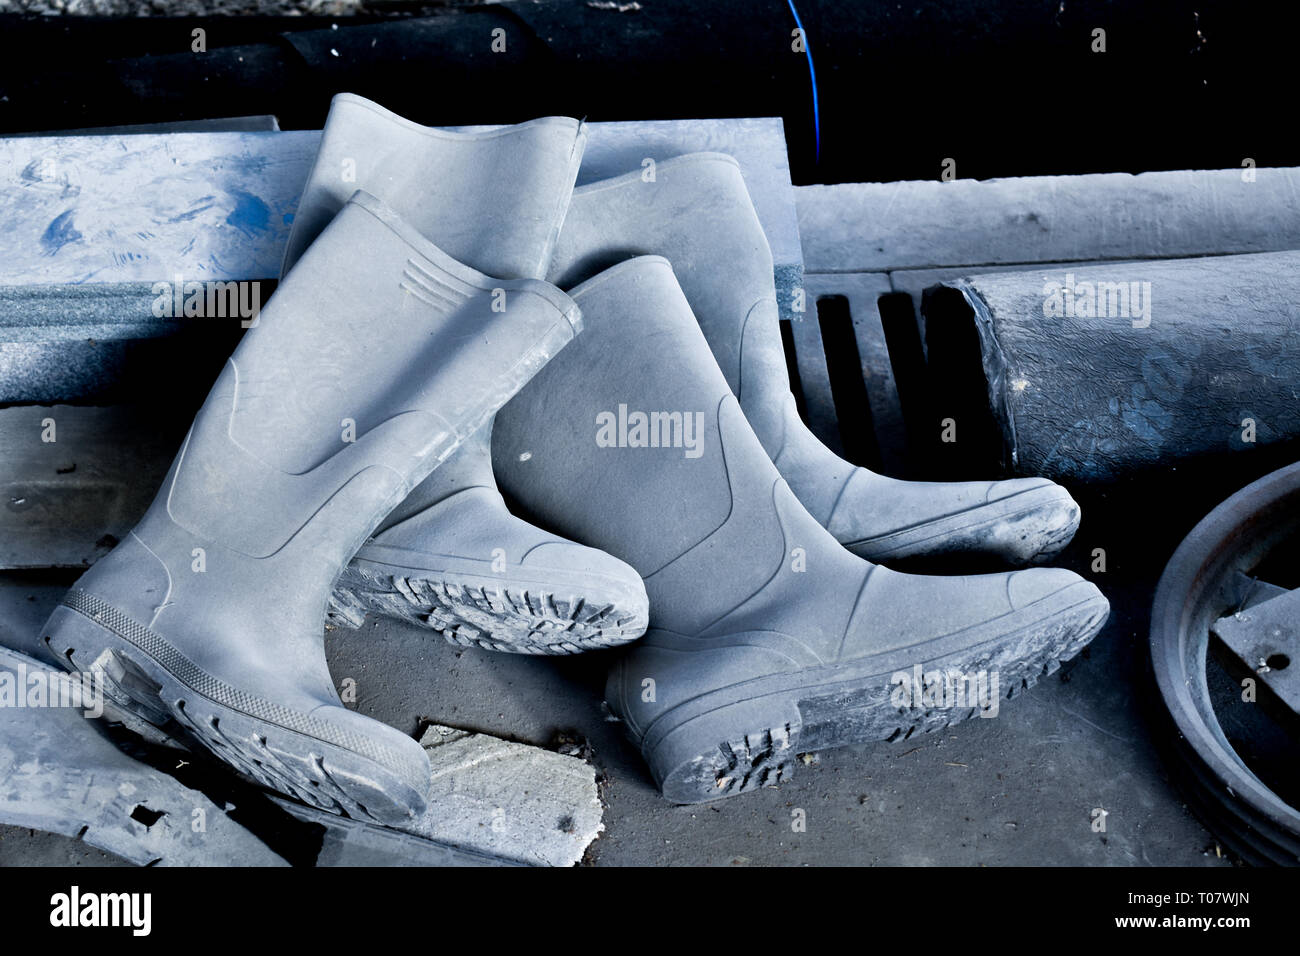 Old forgotten working rubber boots, discarded on the floor, factory dirty floor - Stock Image